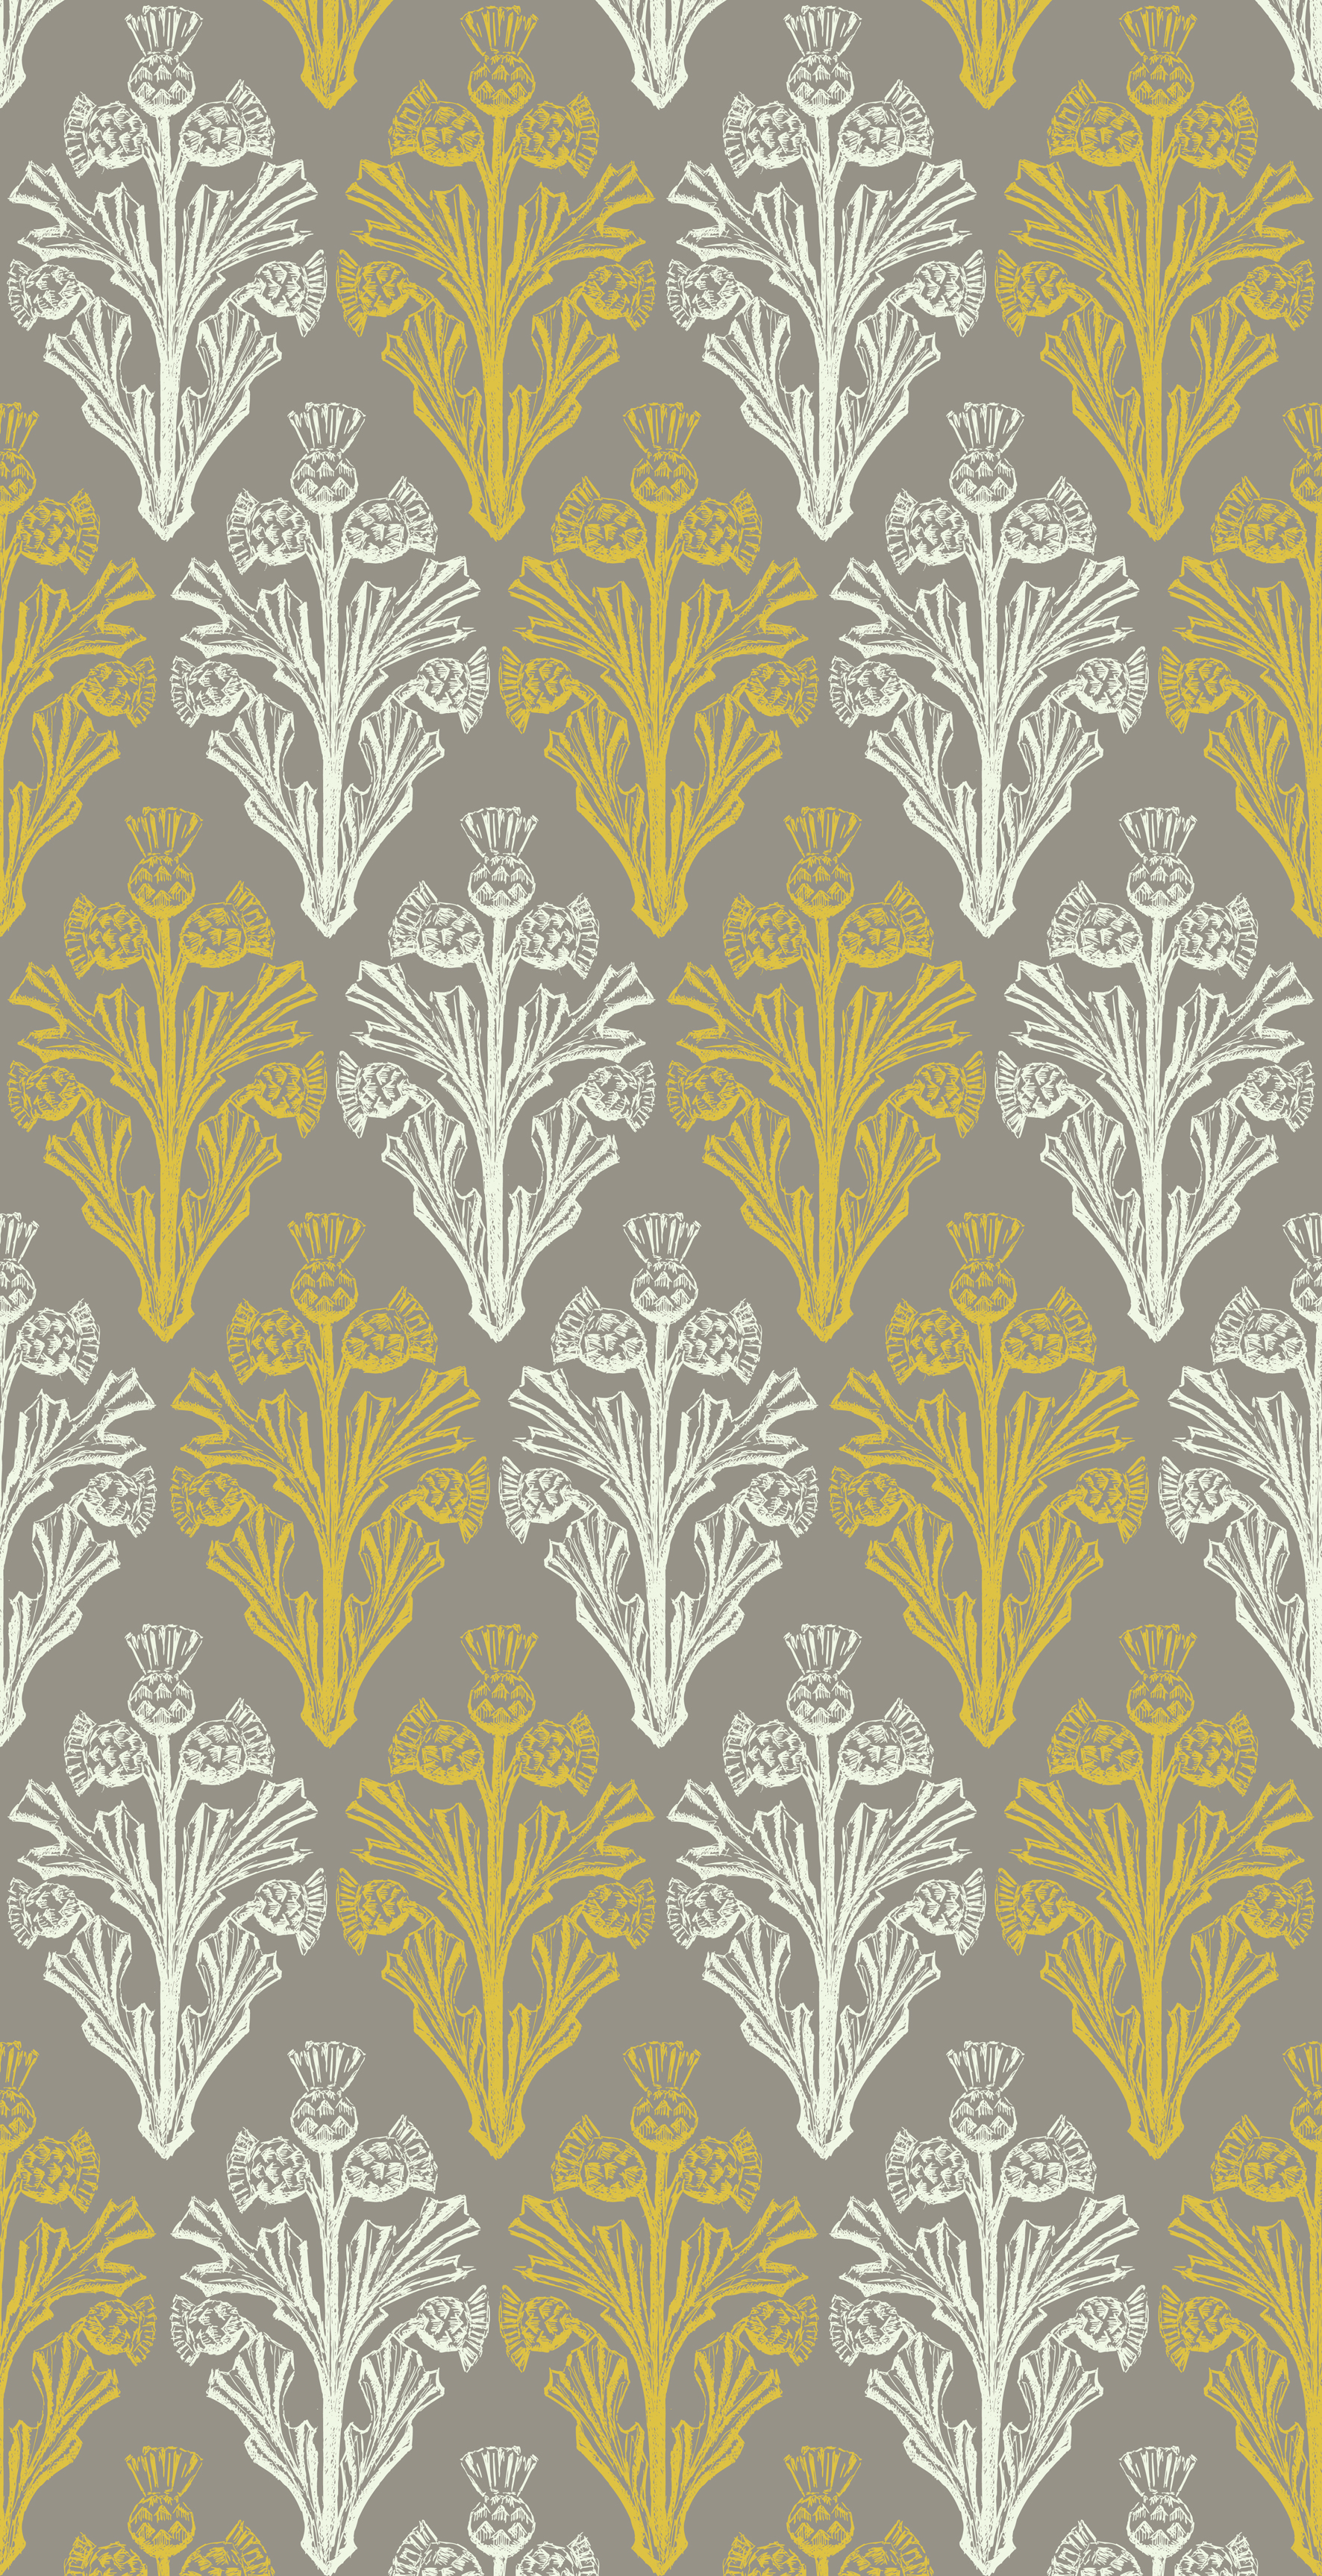 Designed While Watching Braveheart The Original Thistle Image Was 1772x3454